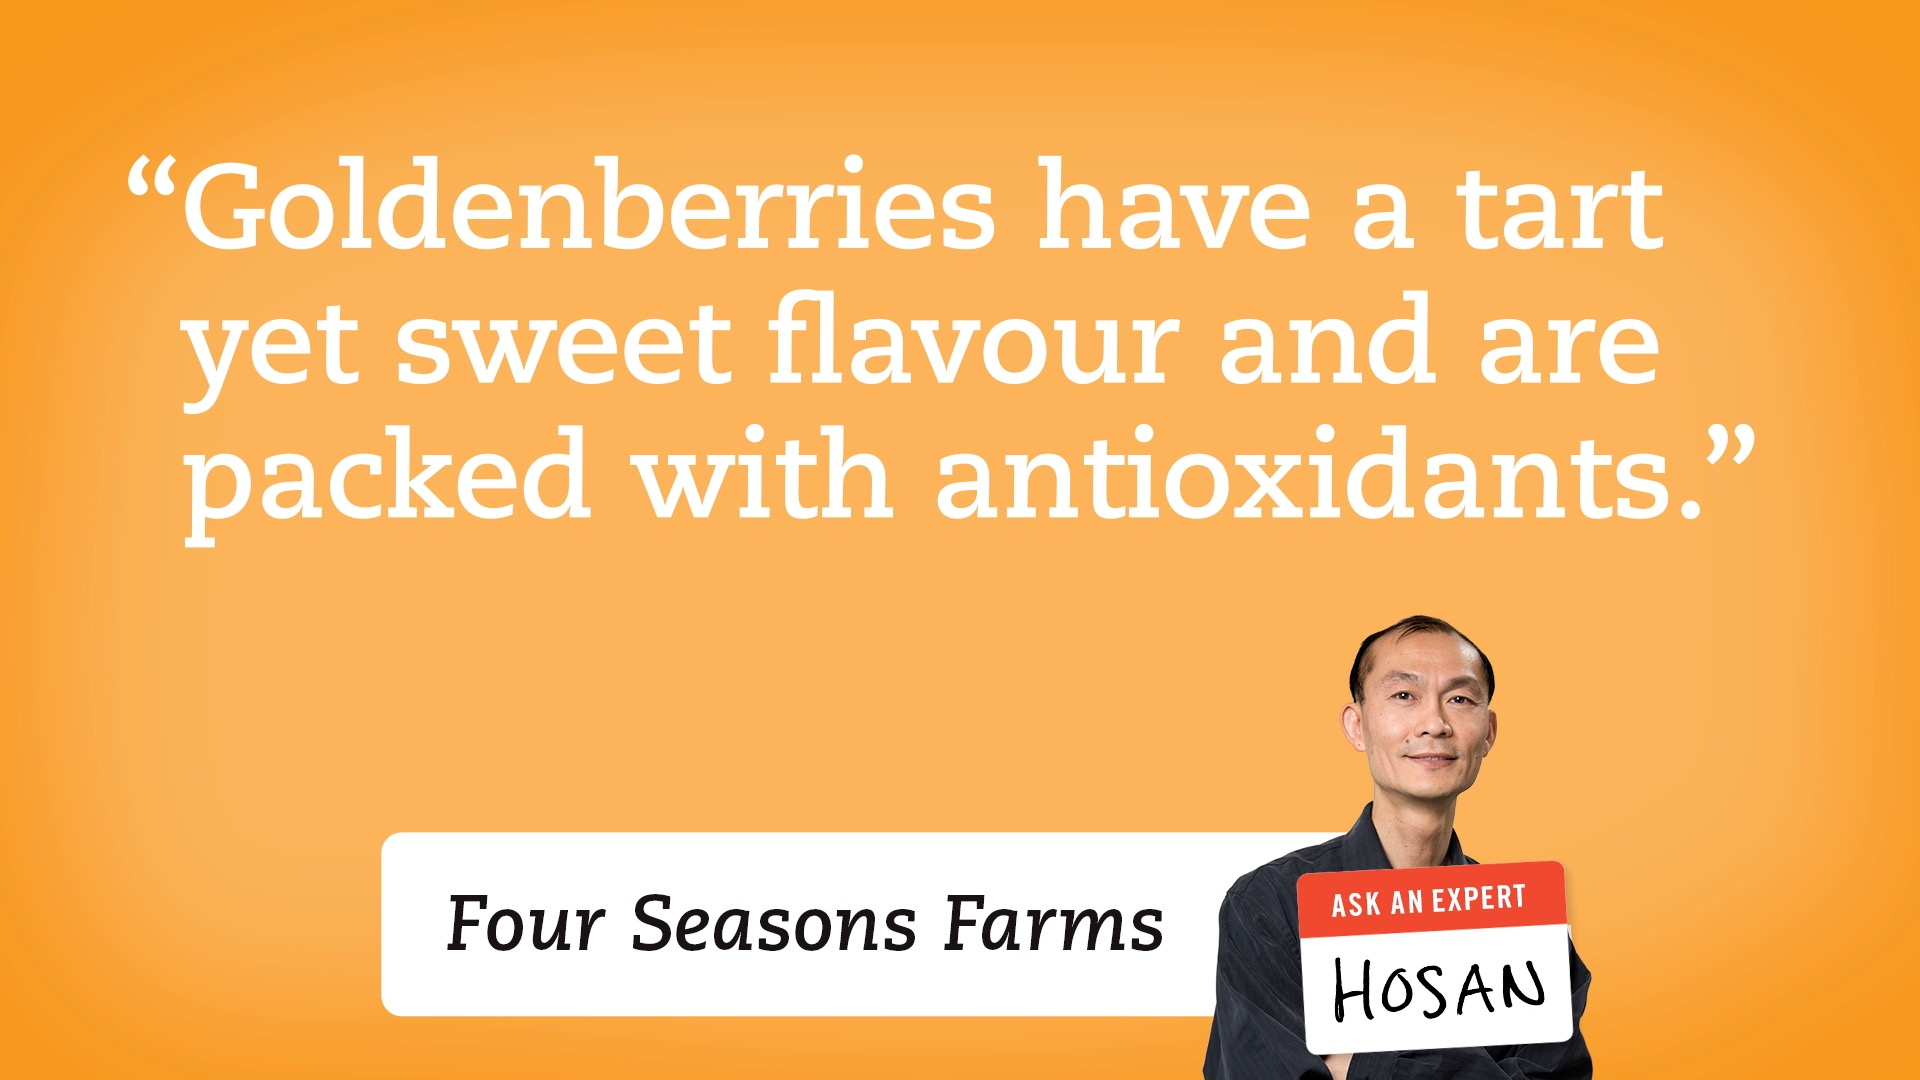 Goldenberries have a tart yet sweet flavour and are packed with antioxidants